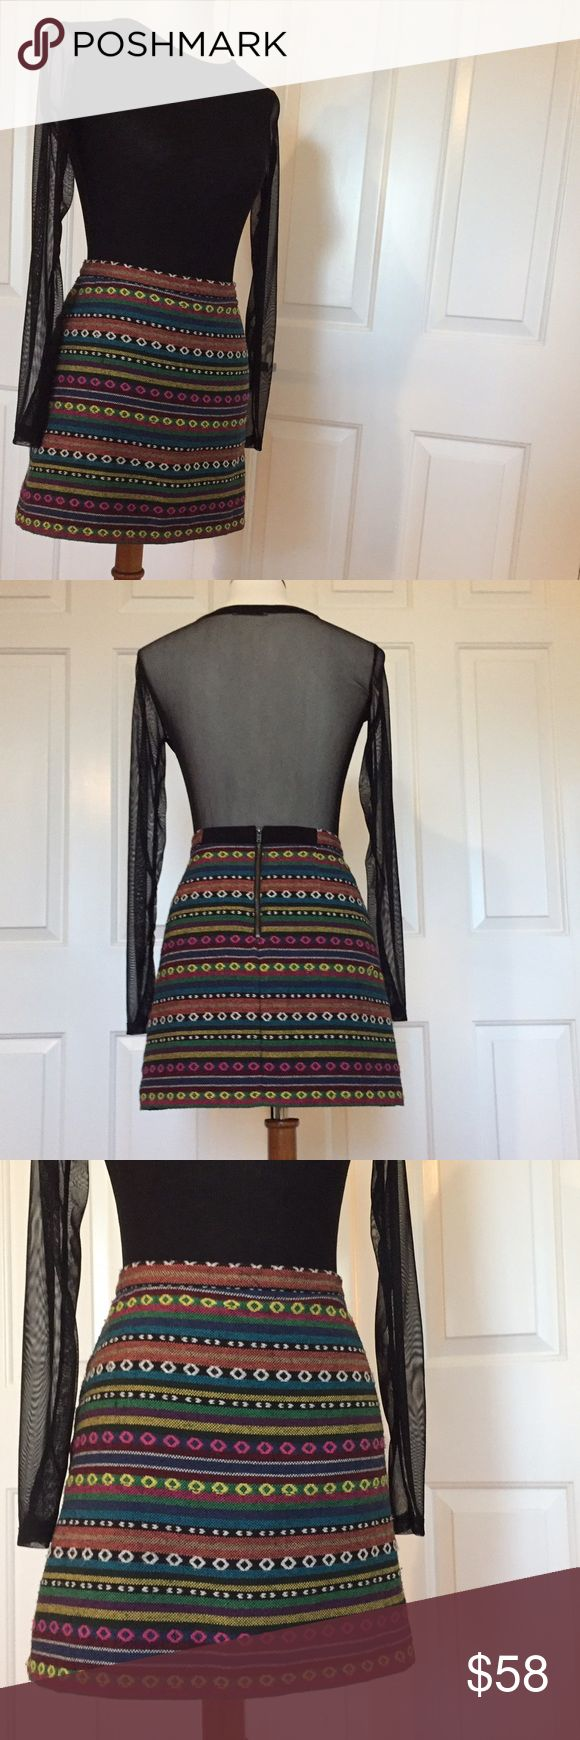 🆕 Topshop Aztec Print Mini Skirt Size 8 This is one of my favorite skirts ever but is too big on me now 😫 Super versatile--Wear it in the summer or winter with tights! Topshop Skirts Mini